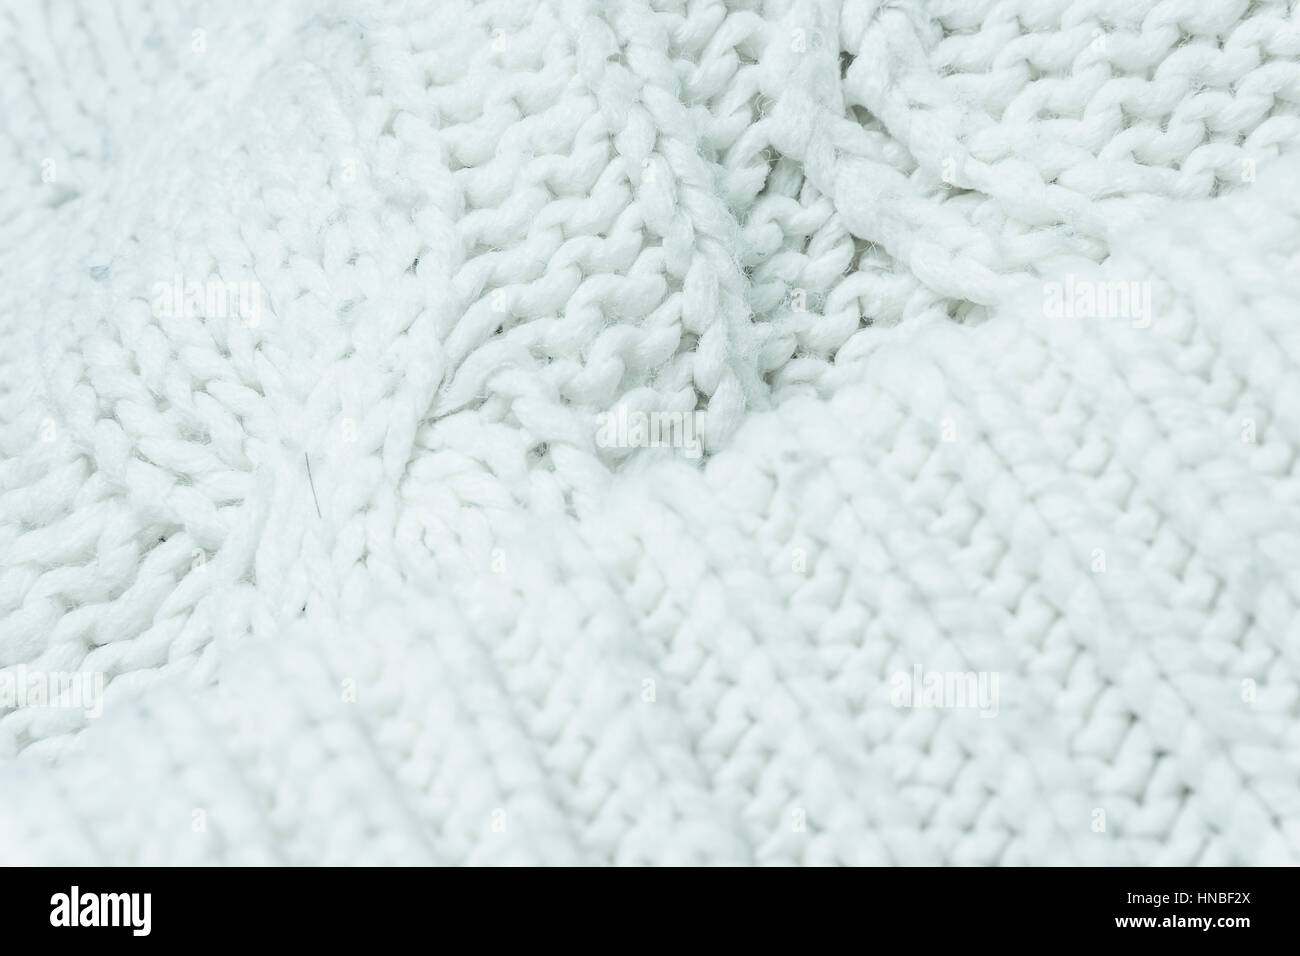 d8deec3ddabe8 knitted fabric texture. Knitted jersey background with a relief pattern.  Braids in knitting